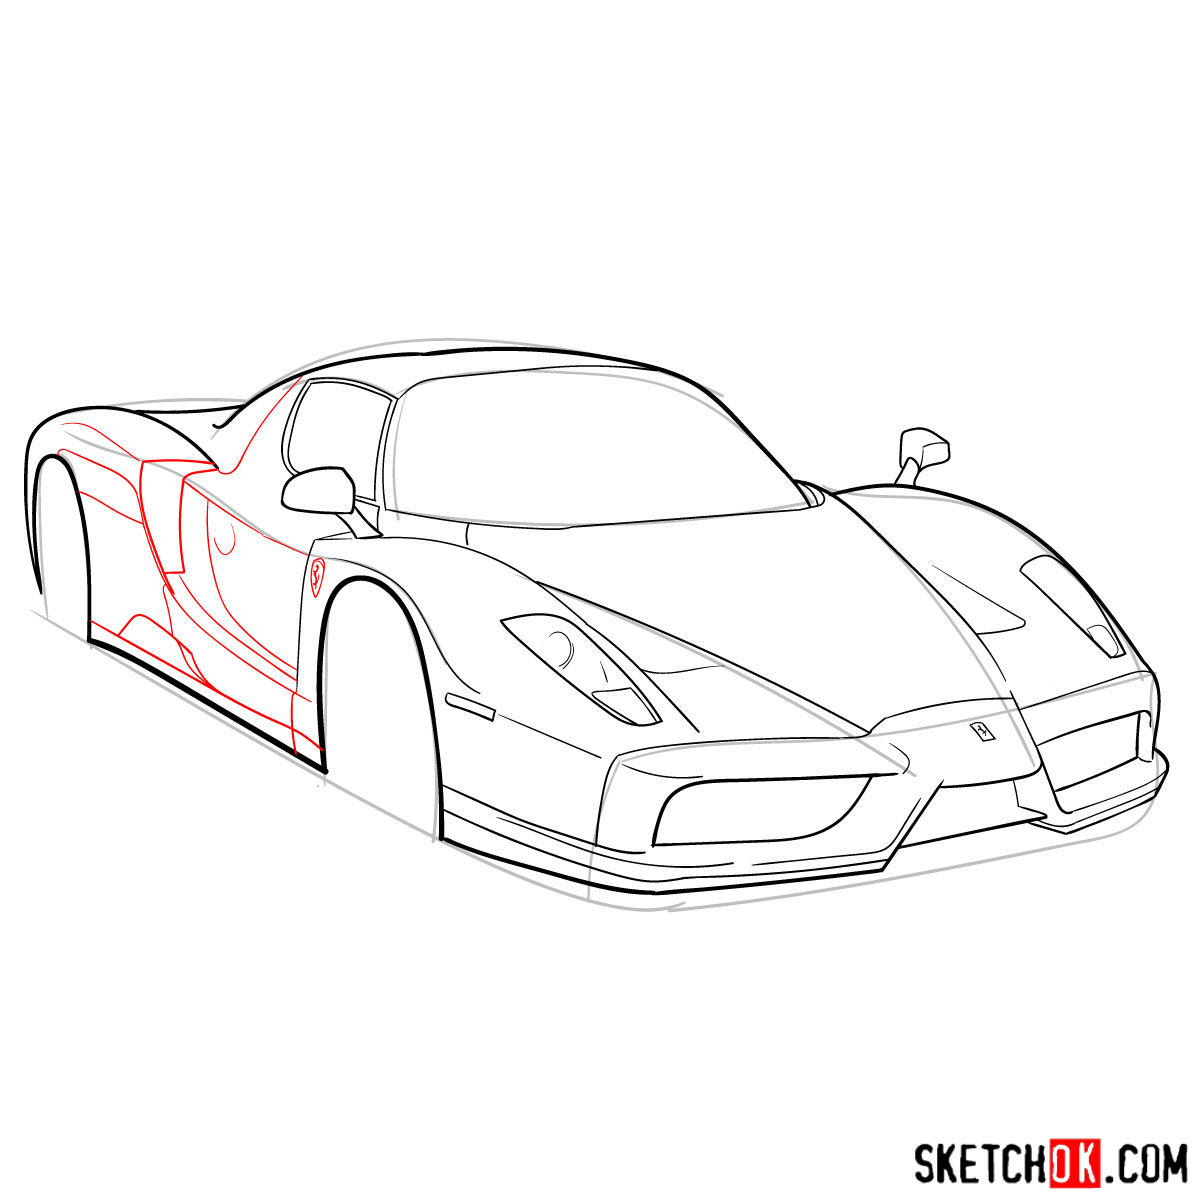 How to draw Ferrari Enzo legendary supercar - step 08